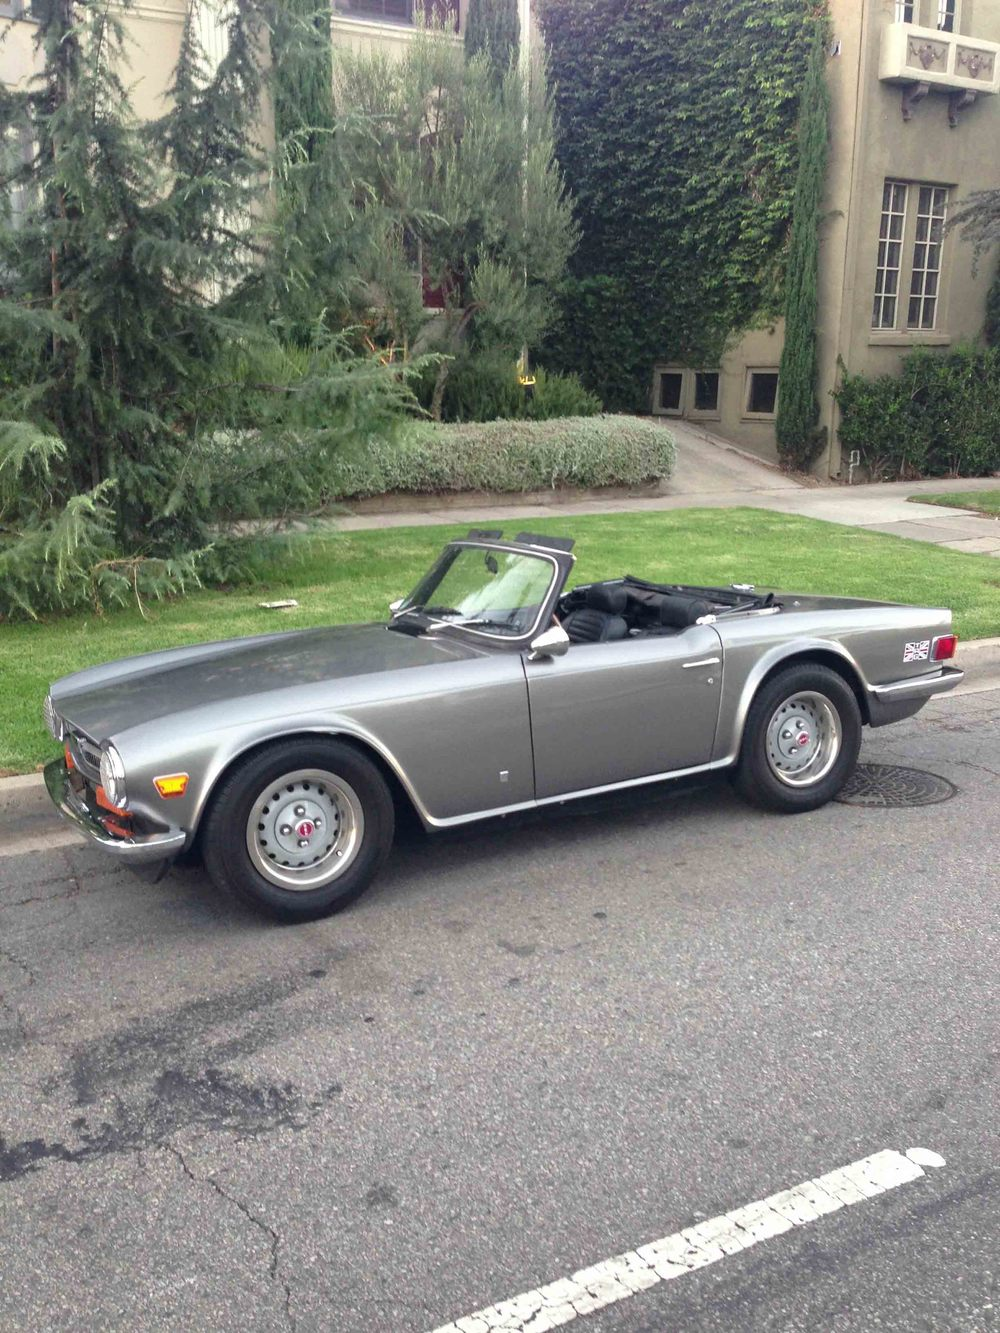 Early 70s Triumph TR6